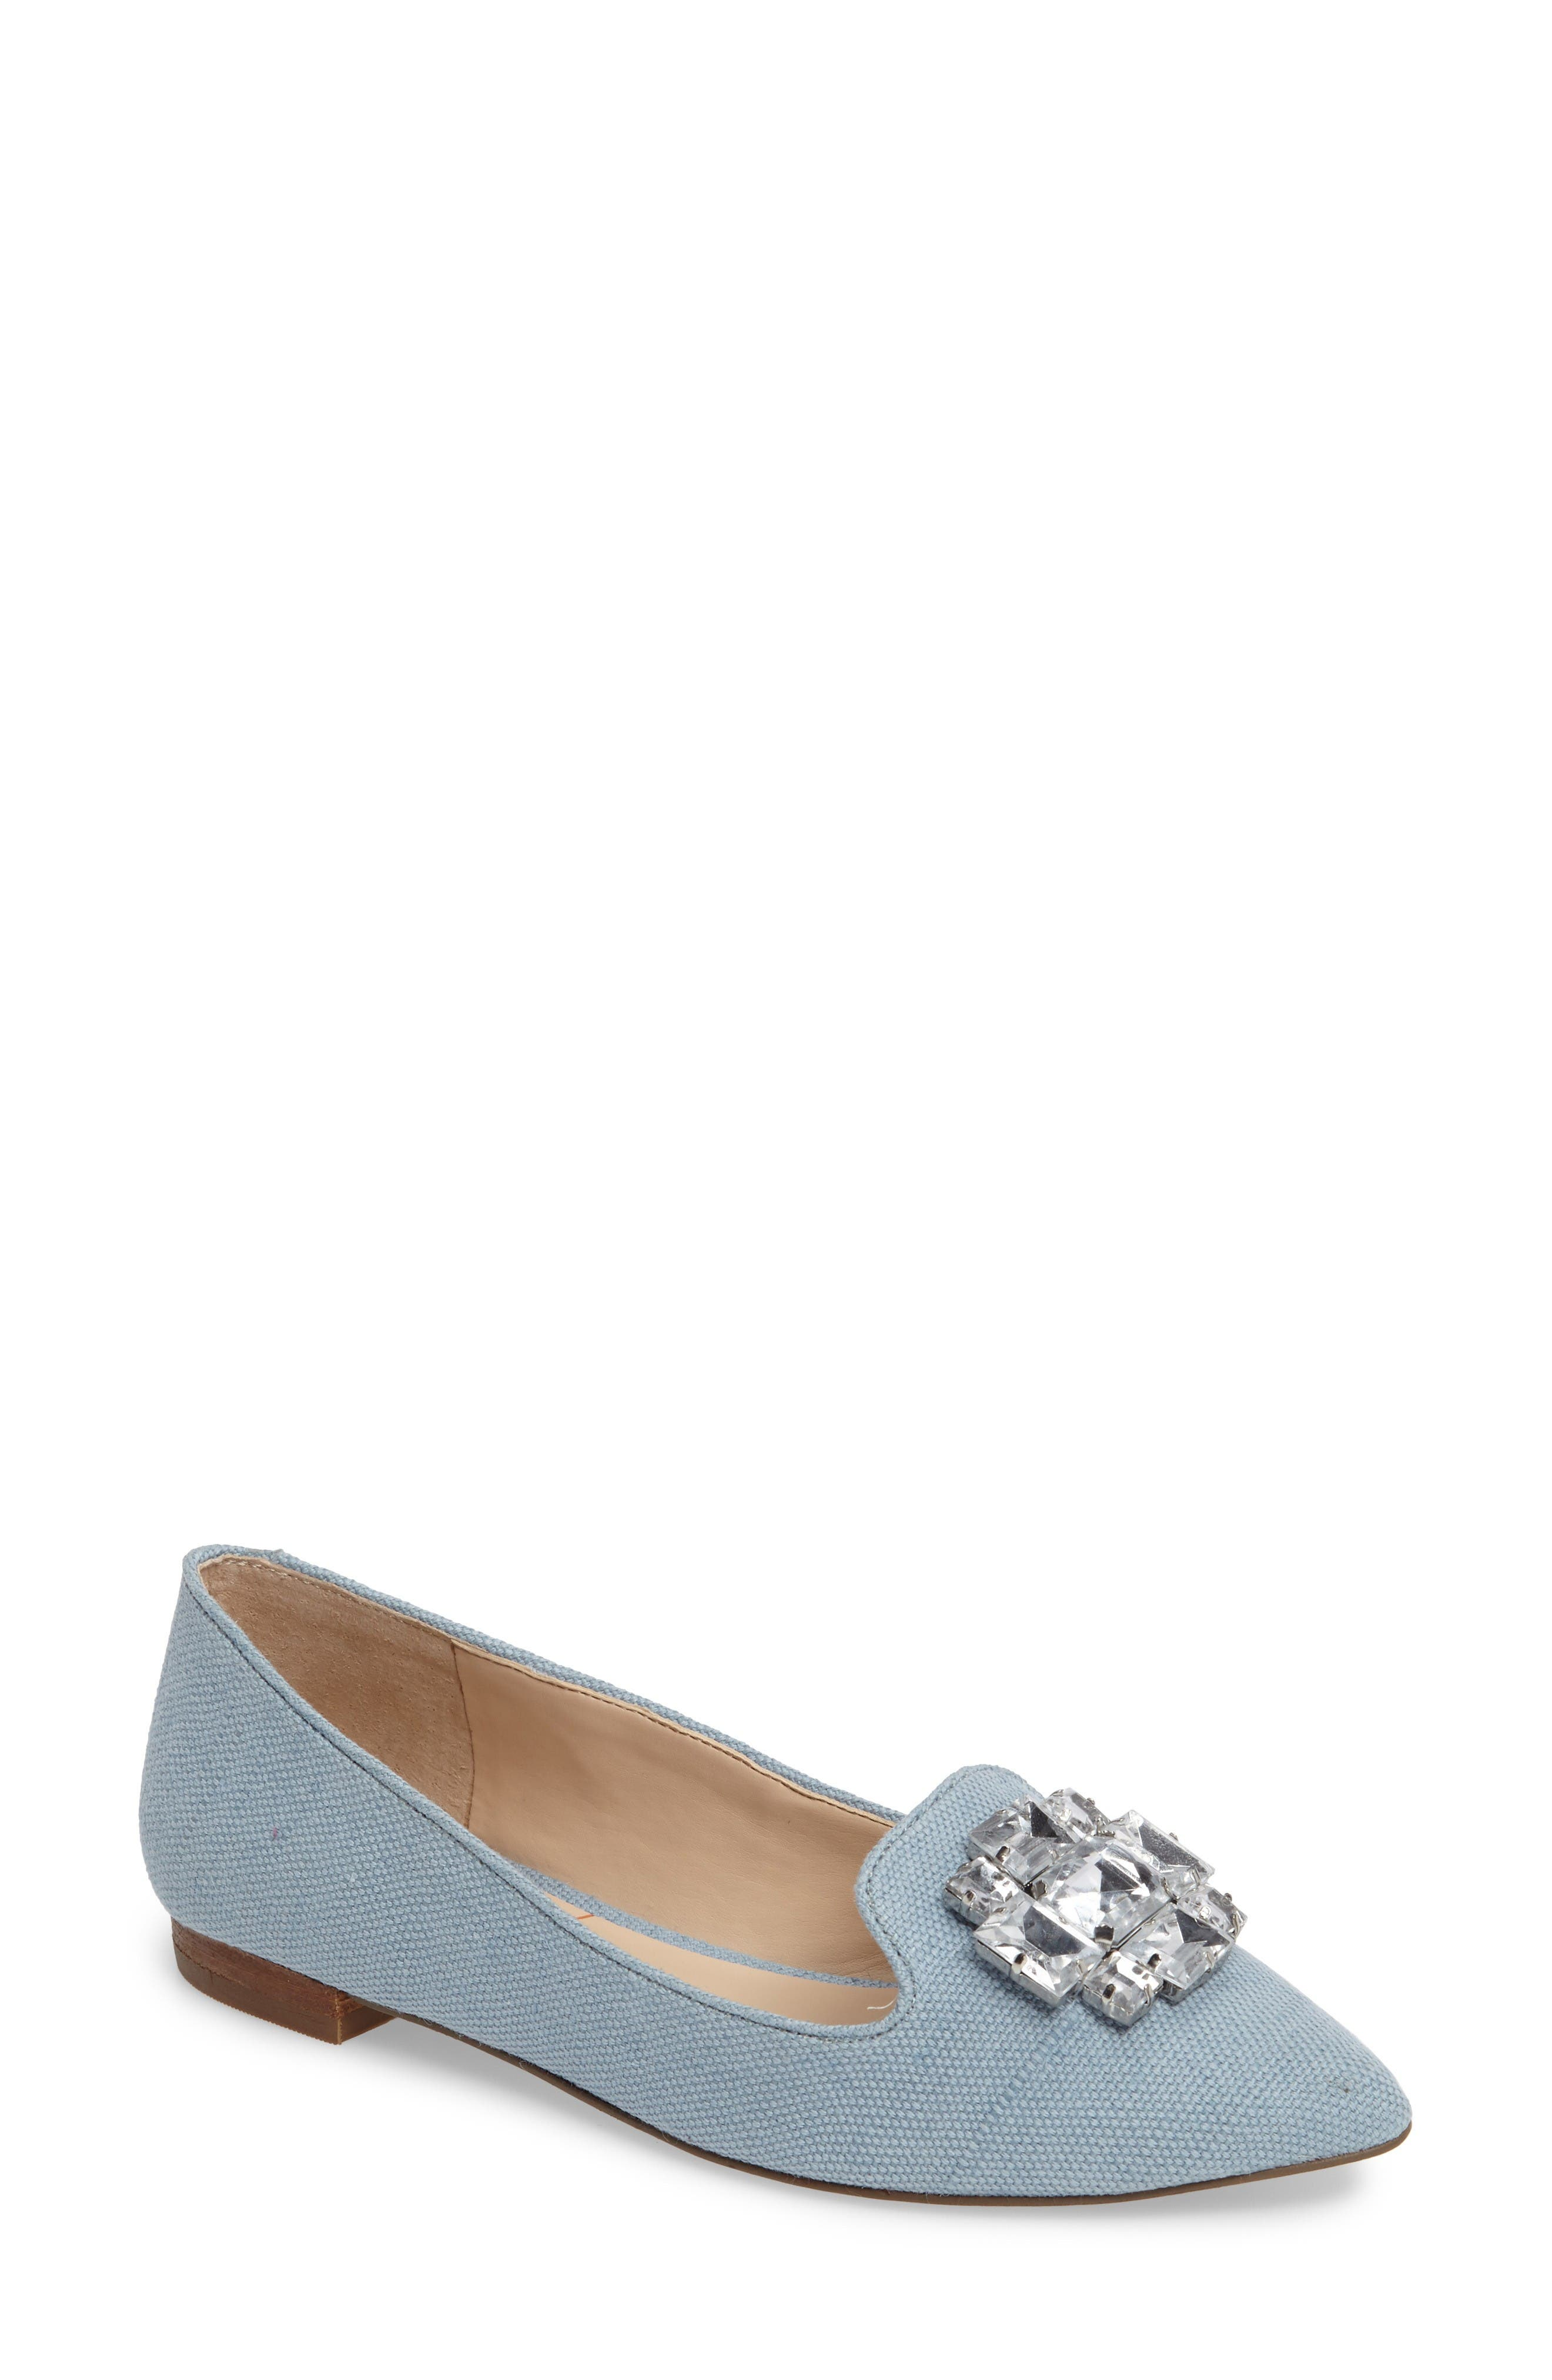 Alternate Image 1 Selected - Sole Society 'Libry' Embellished Pointy Toe Flat (Women)